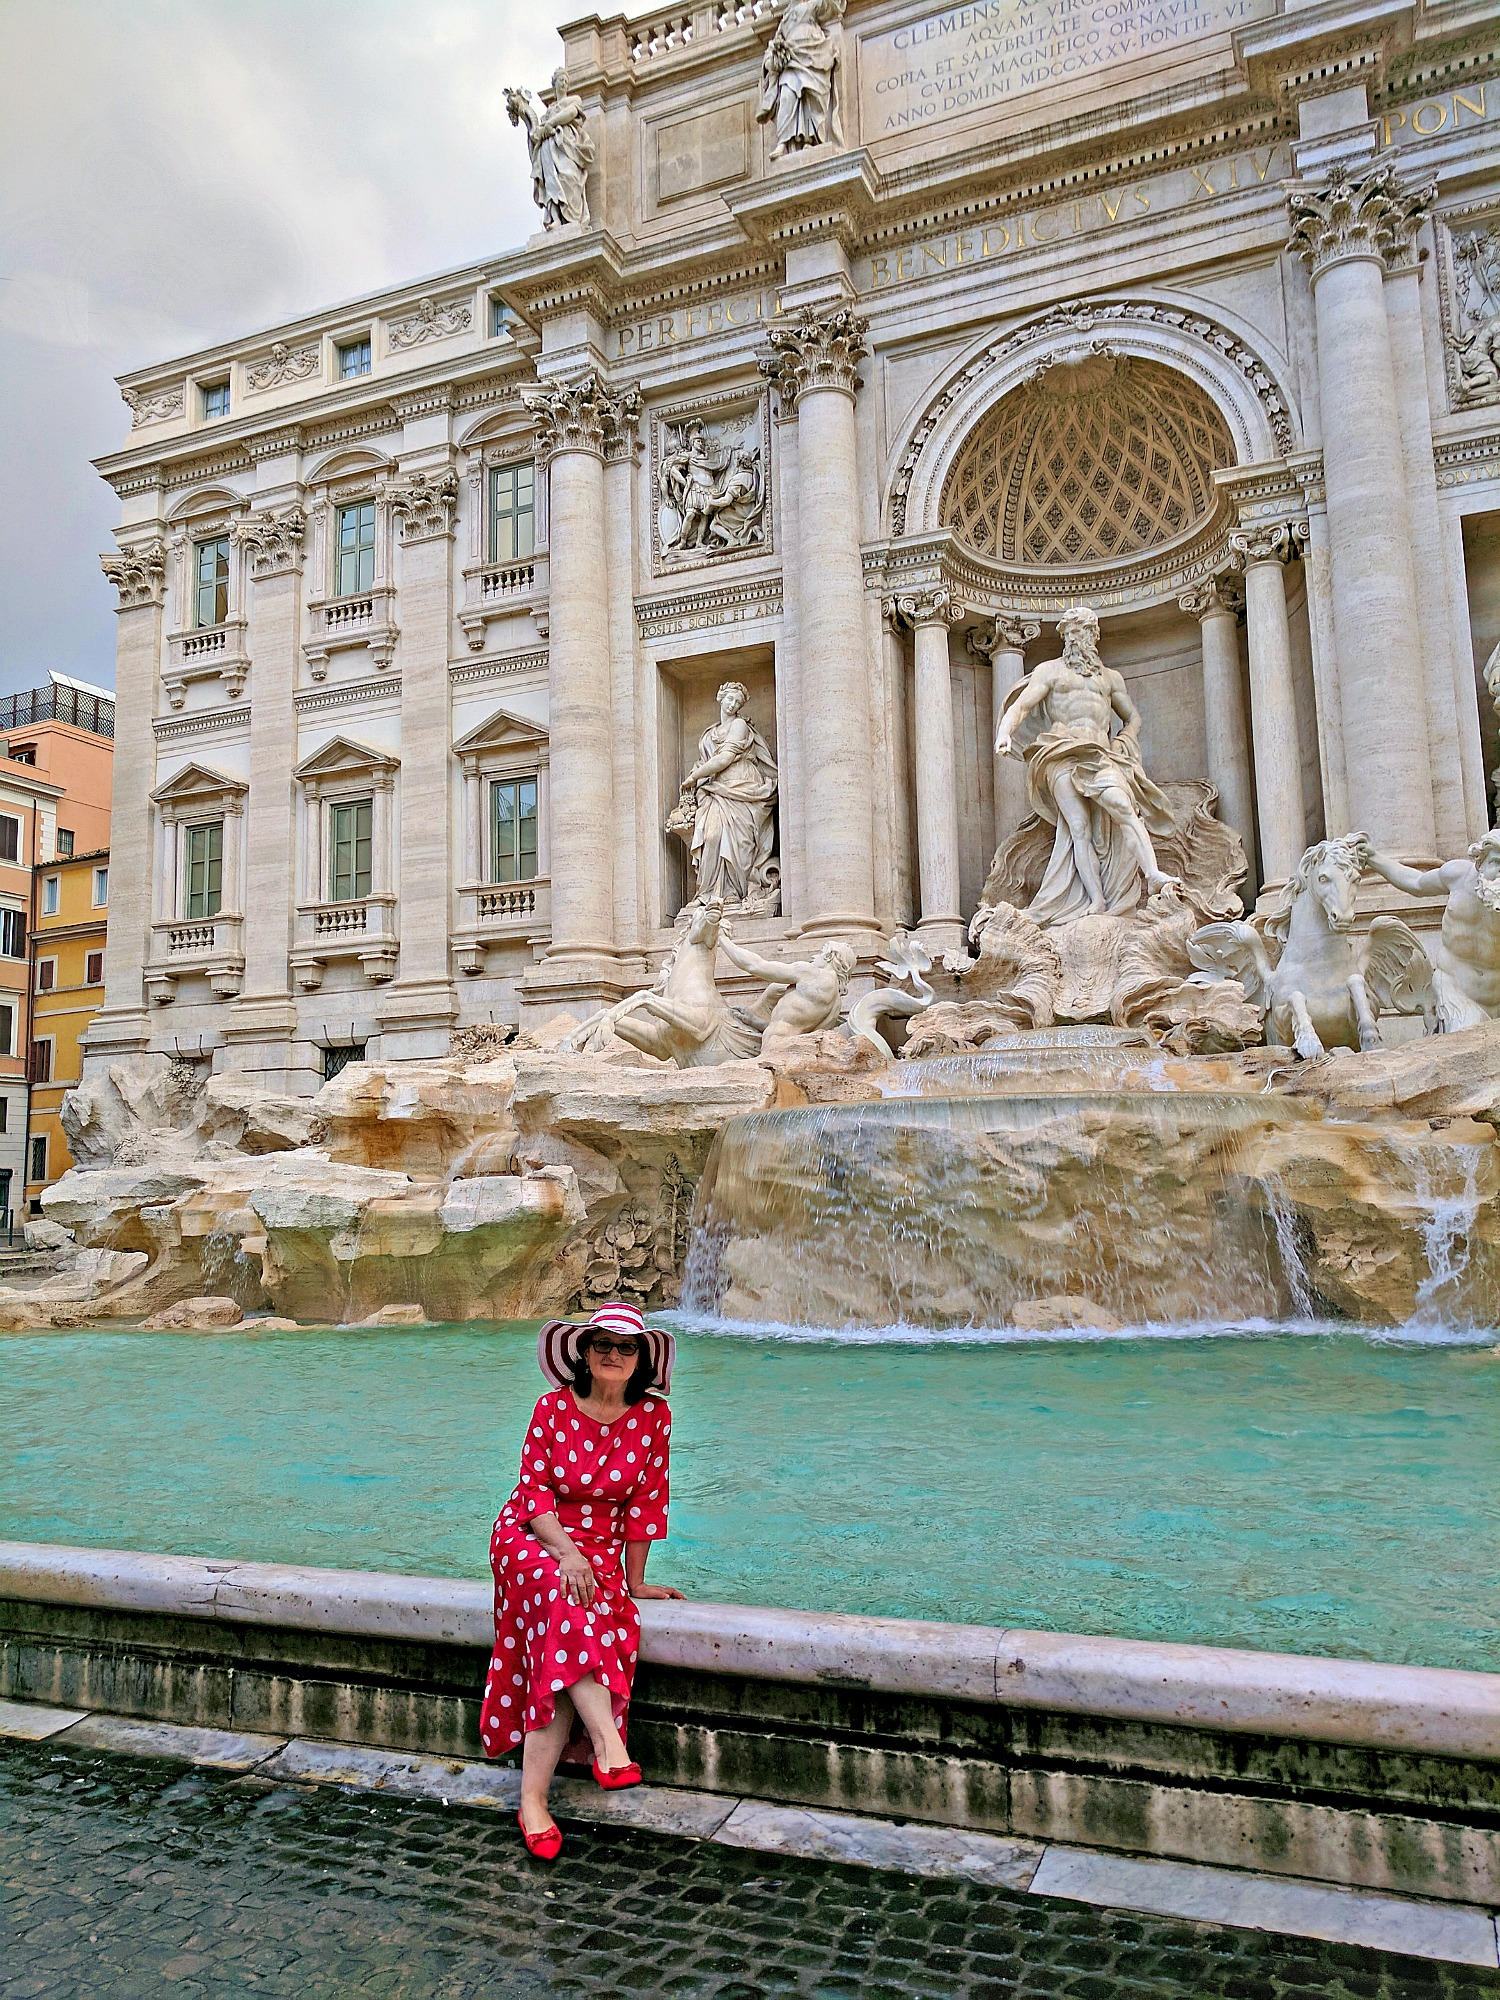 Trevi Fountains in Rome.